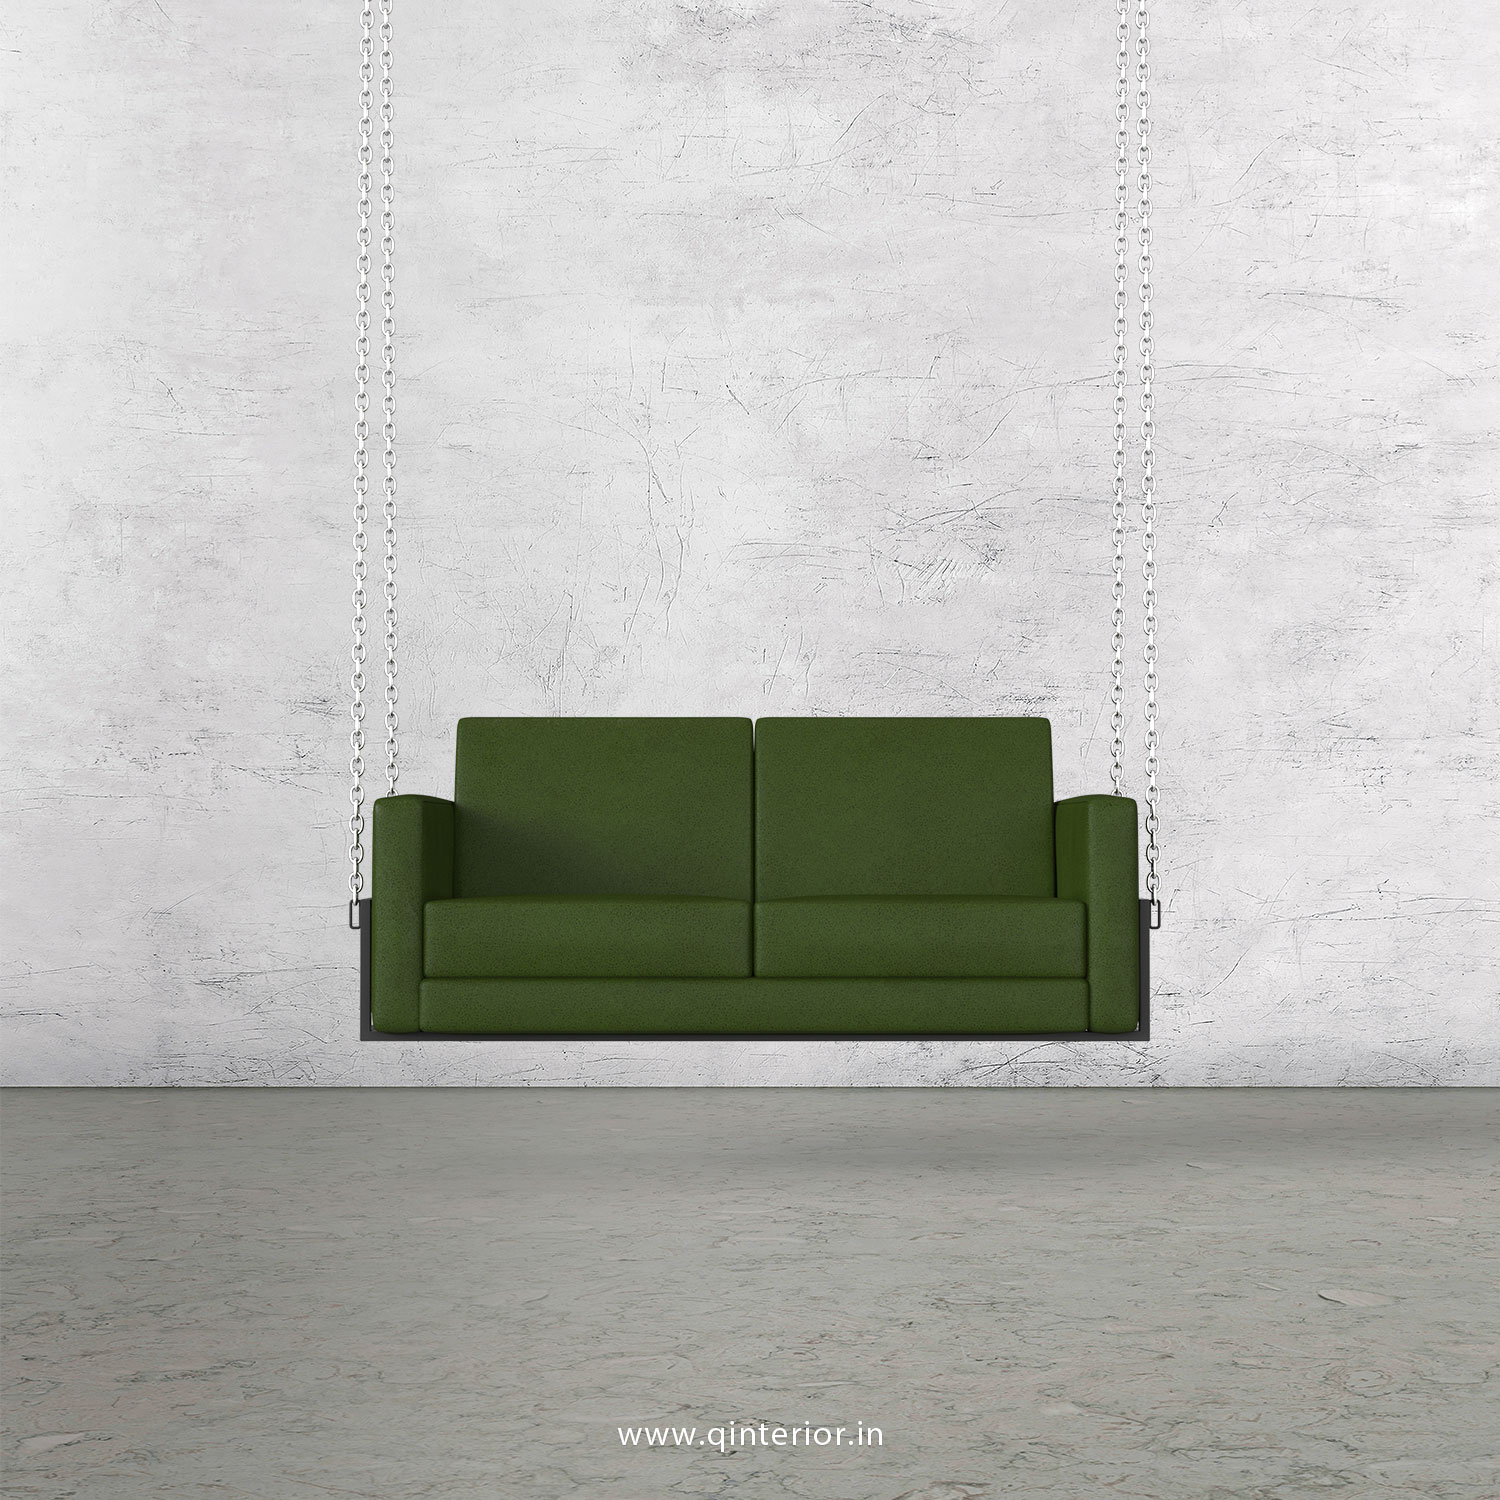 NIRVANA 2 Seater Swing Sofa in Fab Leather Fabric - SSF001 FL04